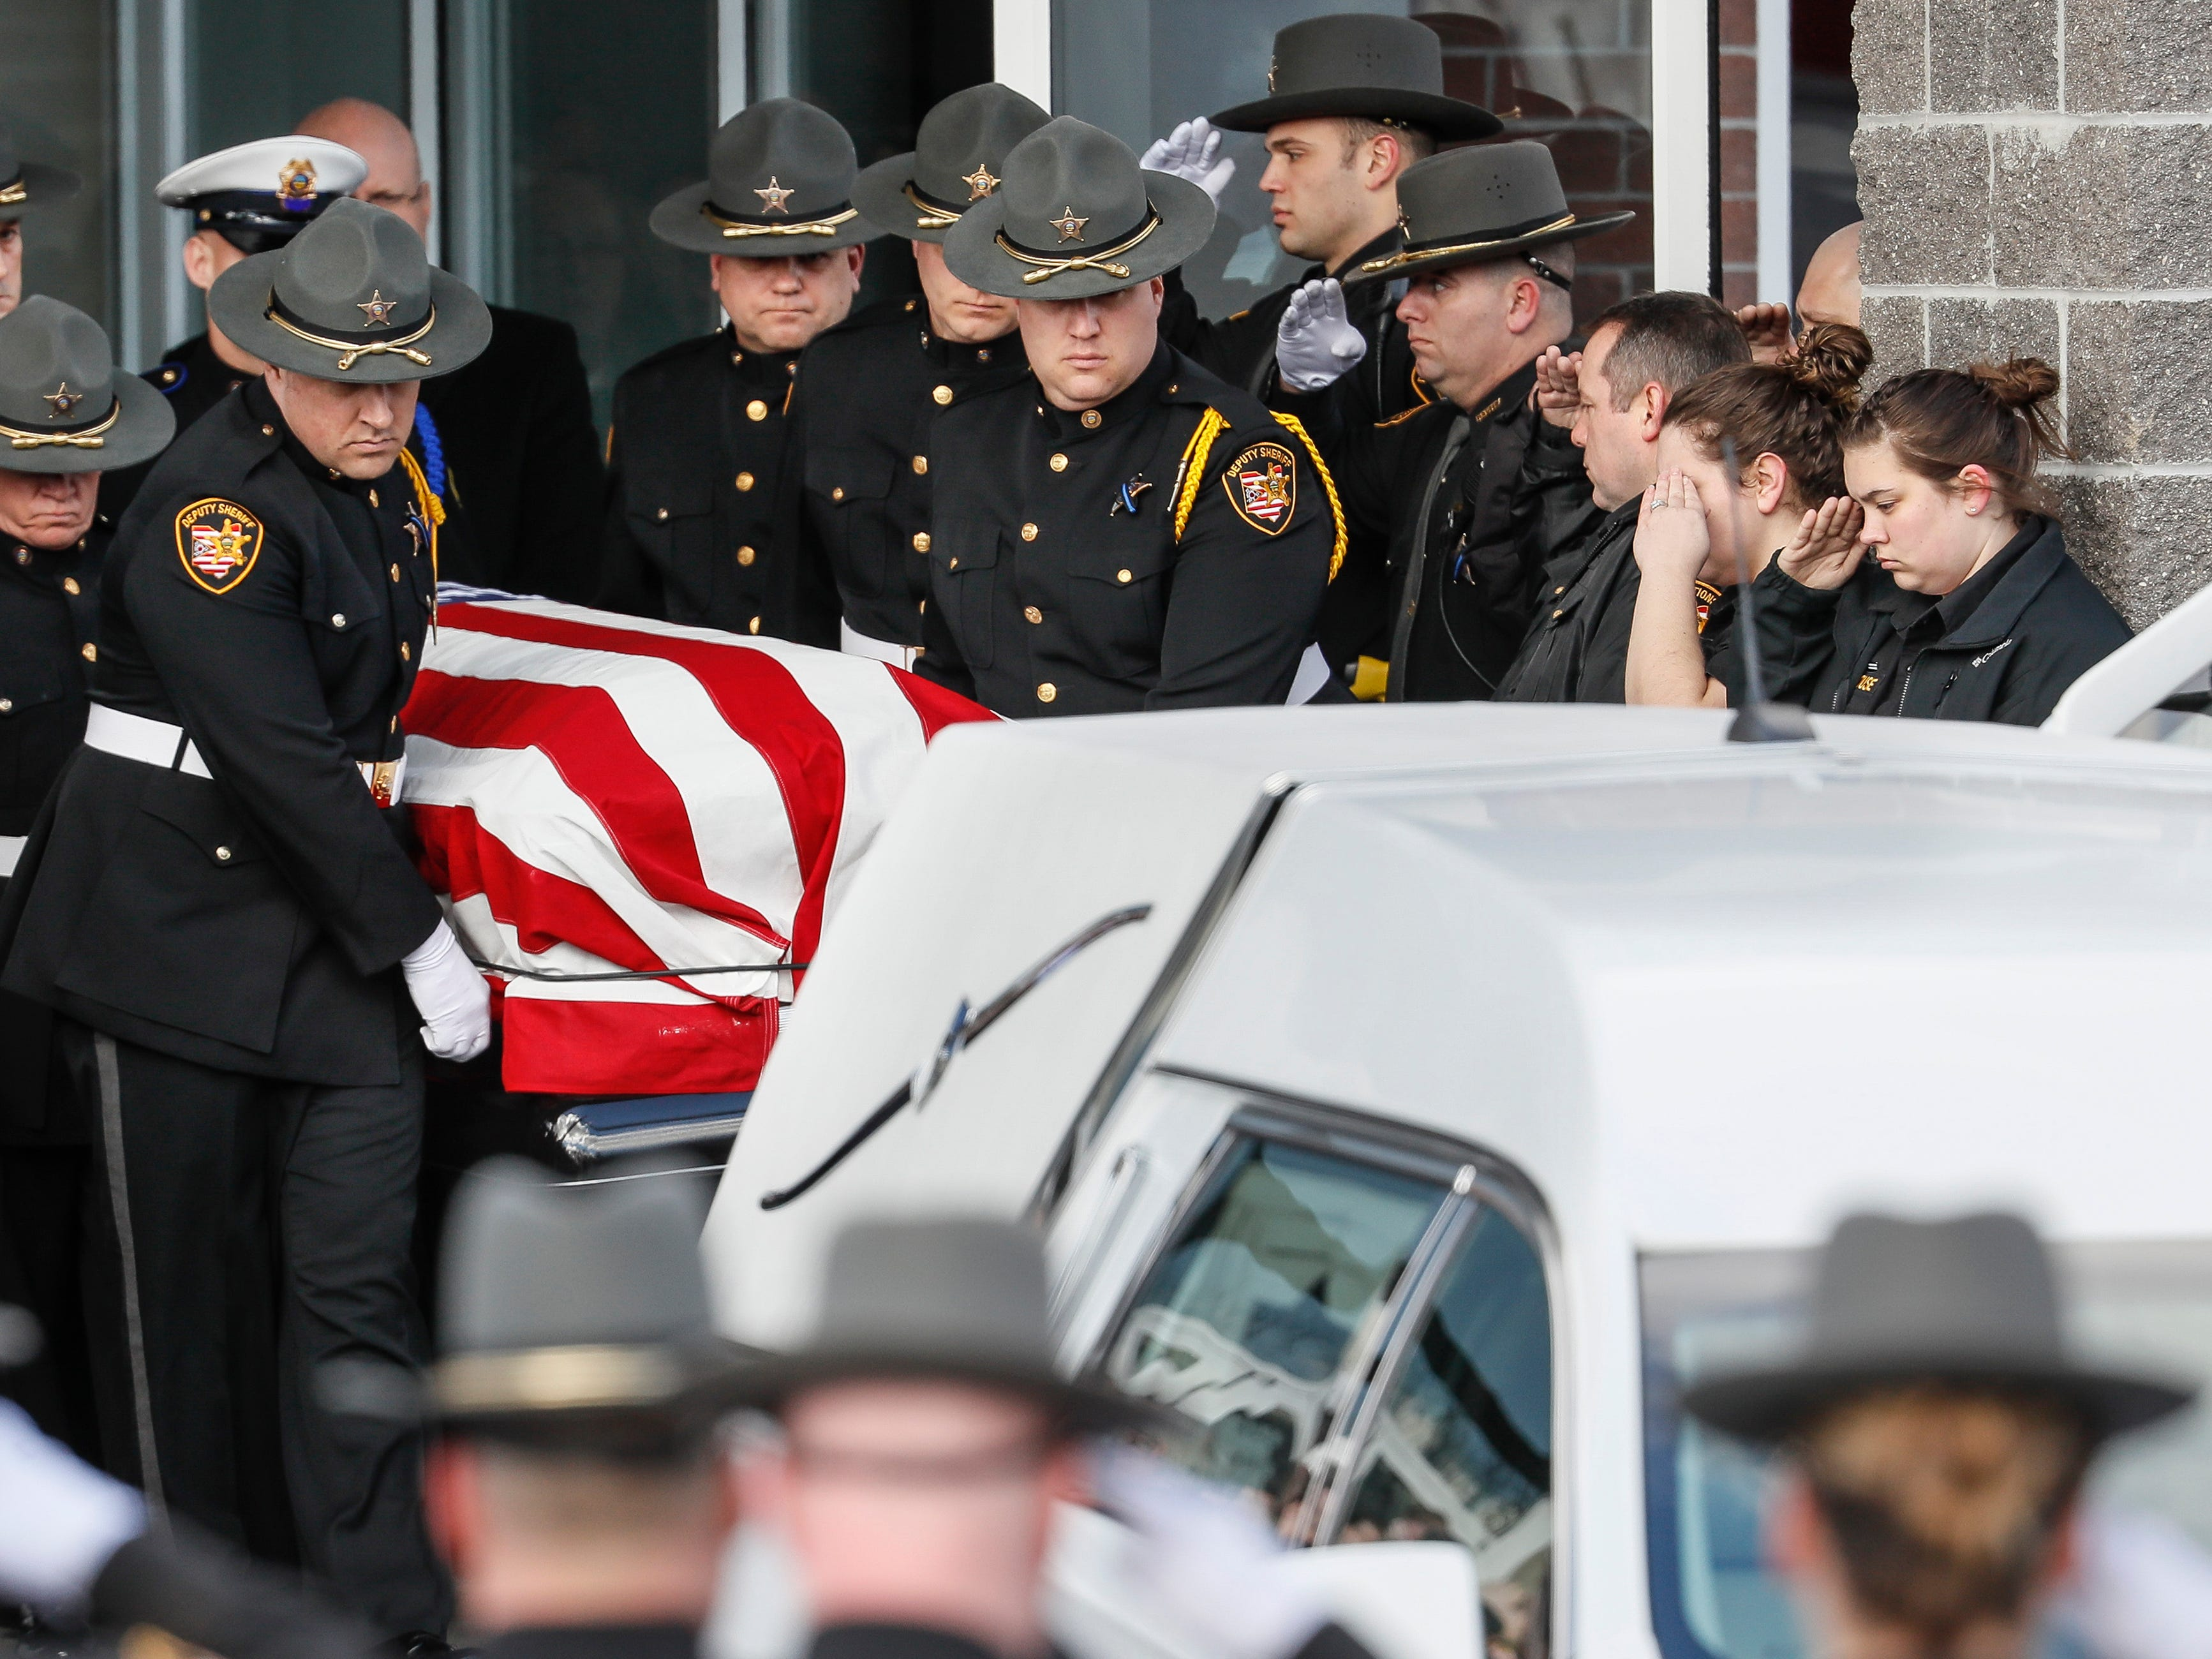 The casket of Detective Bill Brewer, a 20-year veteran of the Clermont County Sheriff's Office, is brought out of Mt. Carmel Christian Church during funeral ceremonies, Friday, Feb. 8, 2019, in Batavia, Ohio. Authorities in the Cincinnati region are reeling after the deaths of five police officers in less than two months. (AP Photo/John Minchillo)